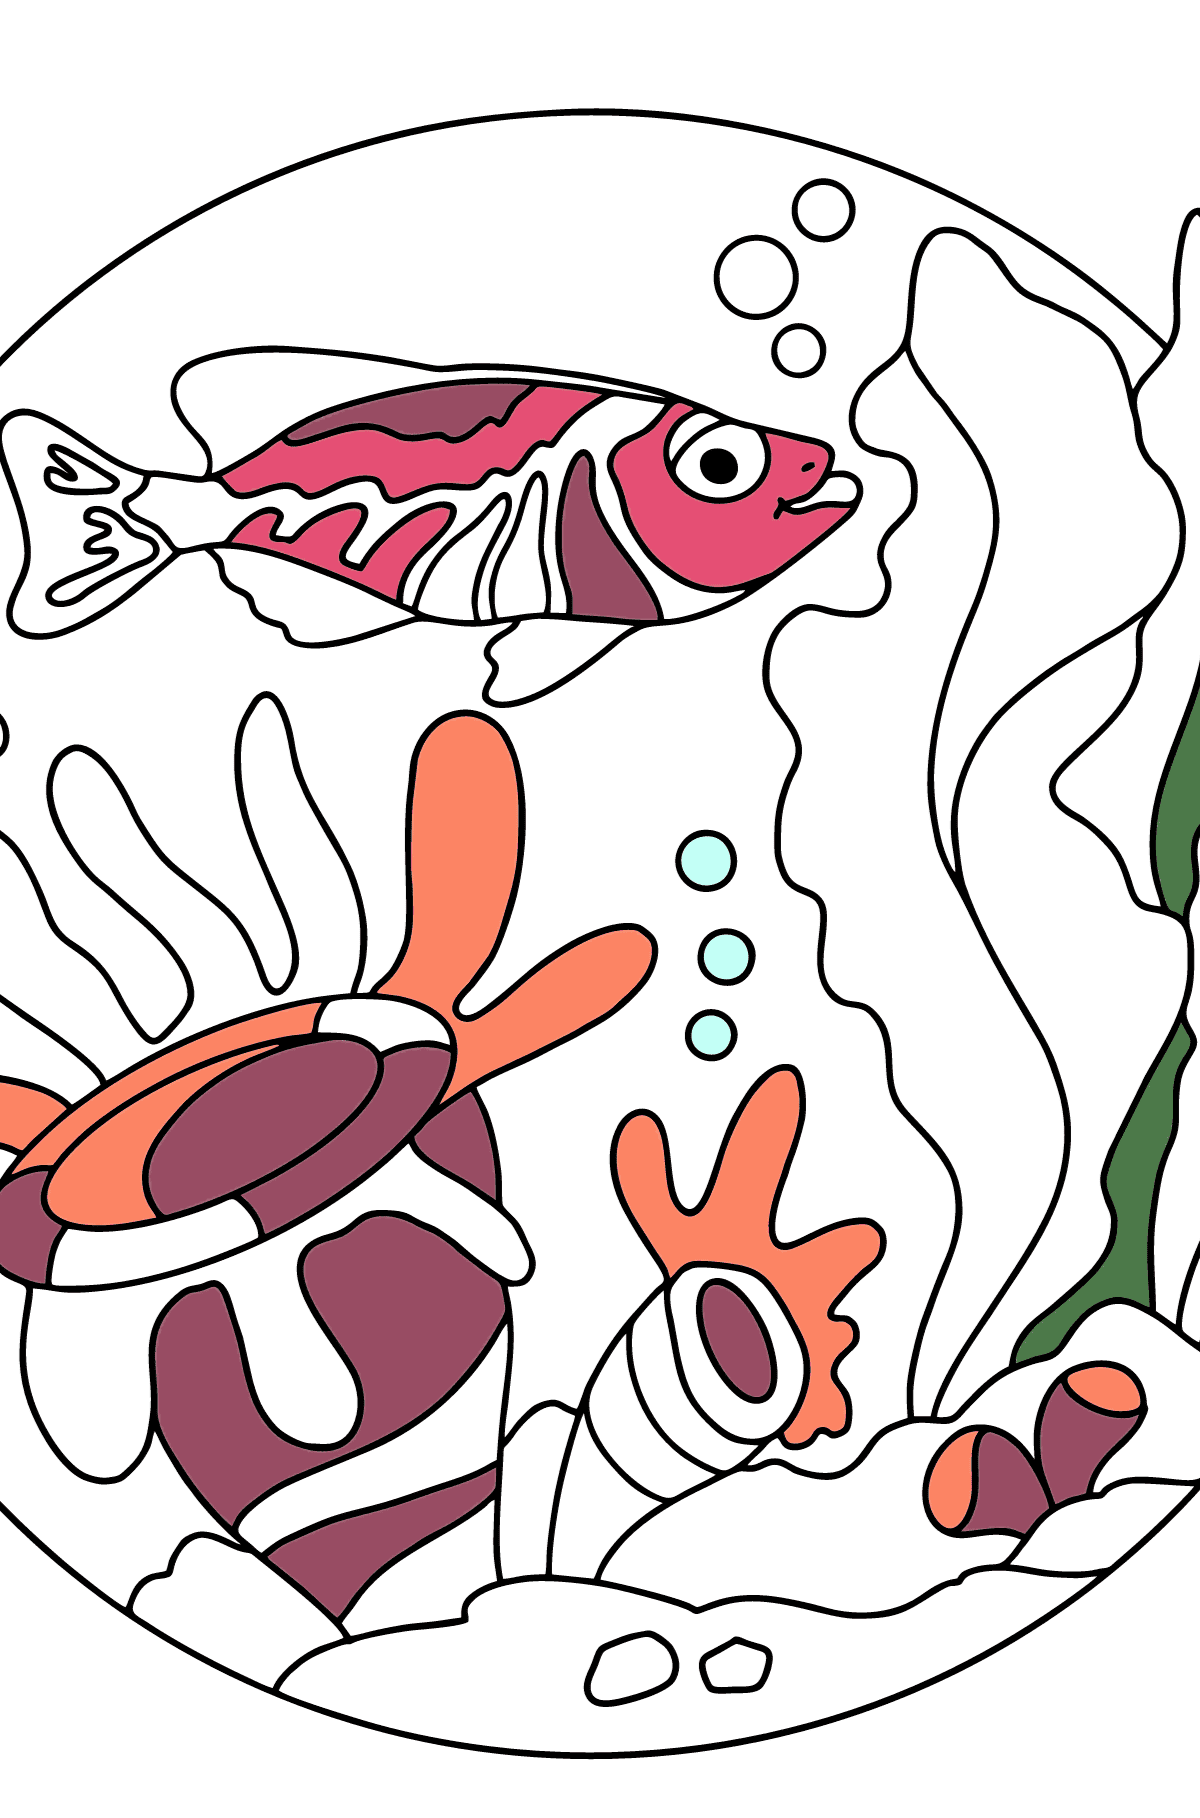 Coloring Page - A Fish is Swimming past the Corals - Coloring Pages for Kids